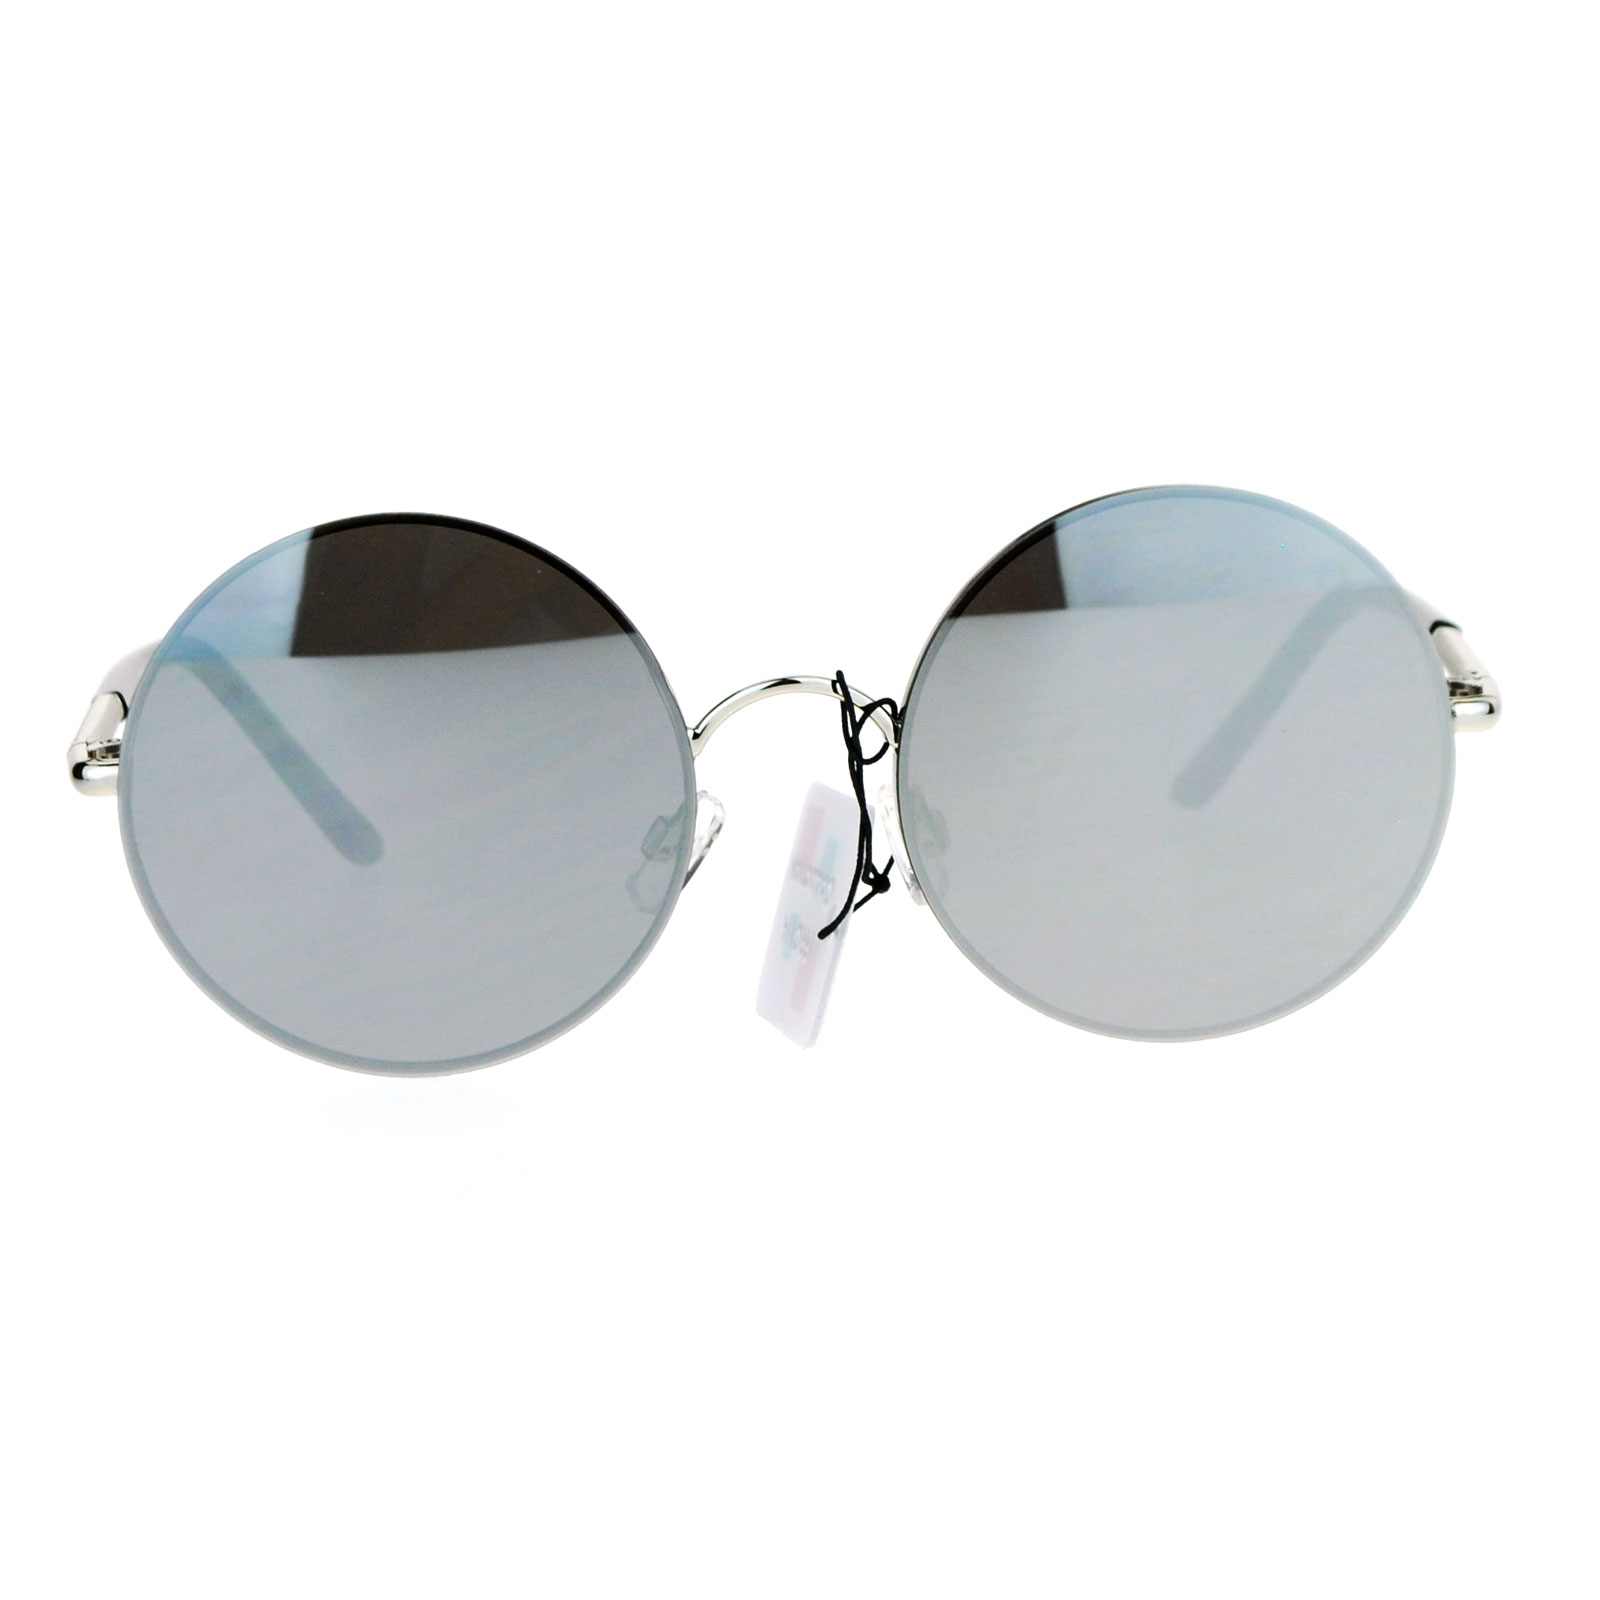 Rimless Glasses Round Lens : SA106 Flat Colored Mirror Lens Rimless Round Circle Lens ...